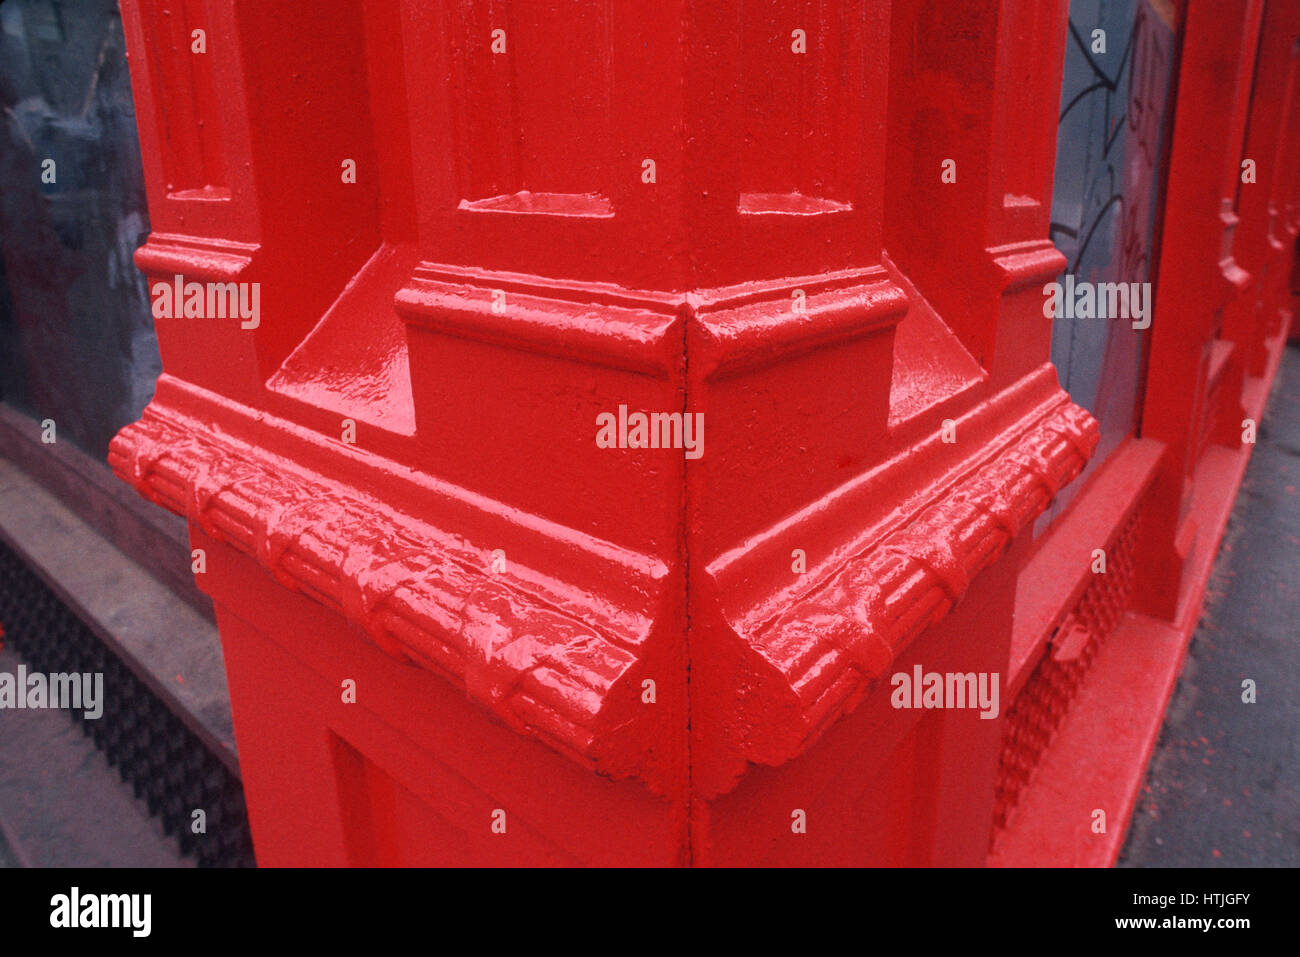 Very Colorful Red Corner of Storefront - Stock Image